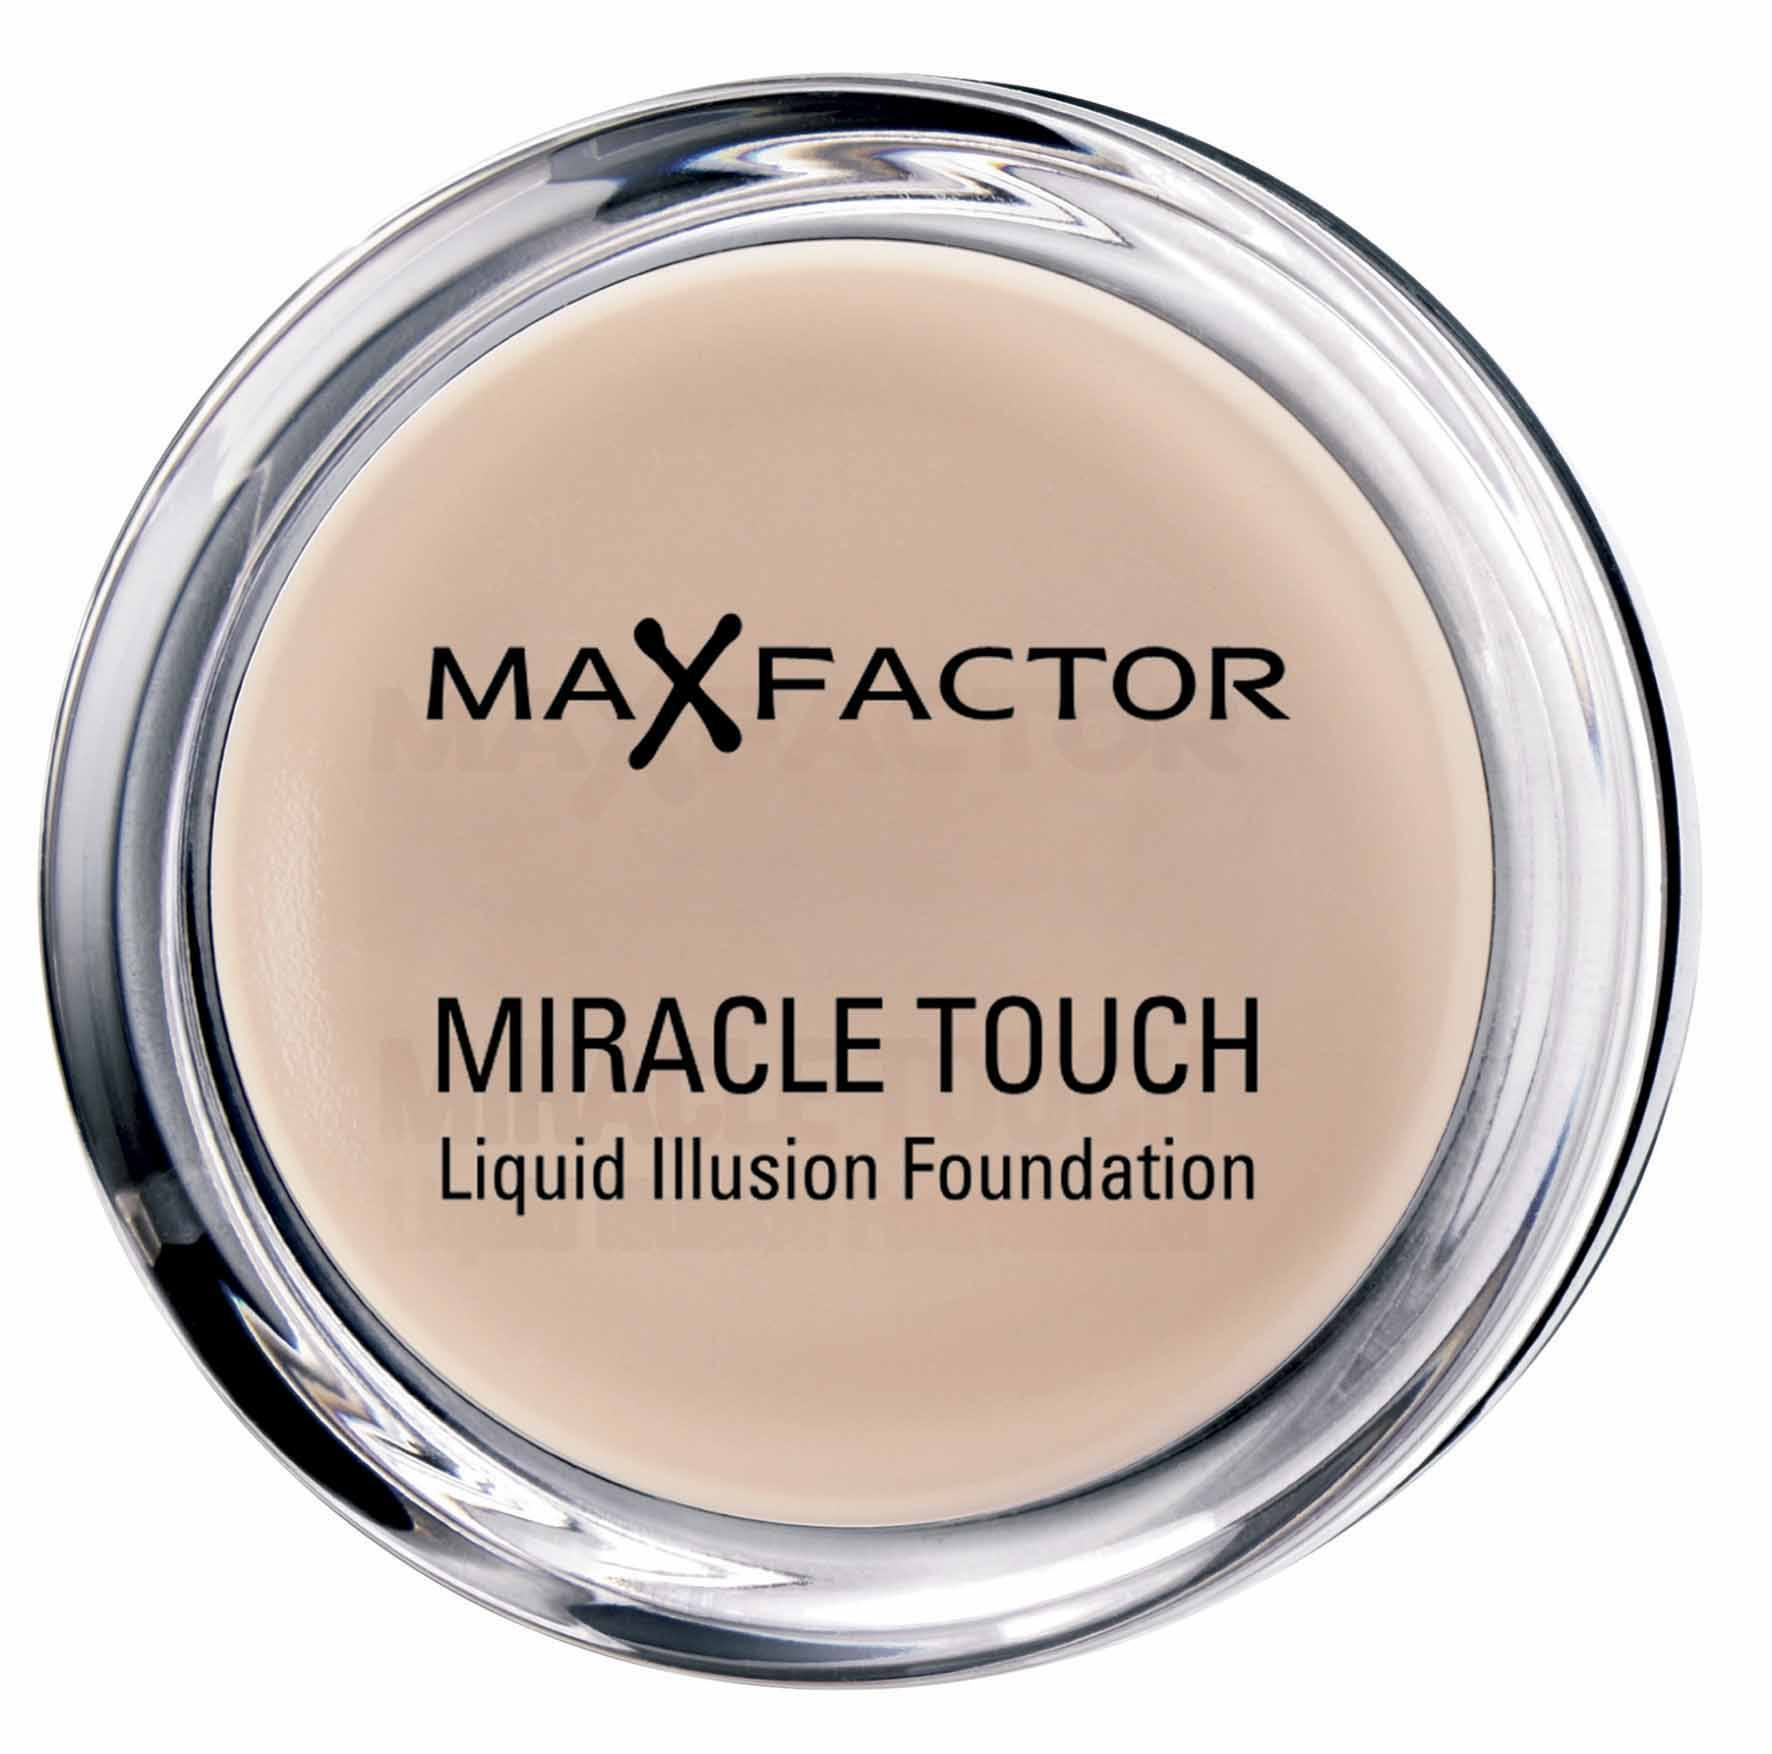 max factor miracle touch foundation. Black Bedroom Furniture Sets. Home Design Ideas